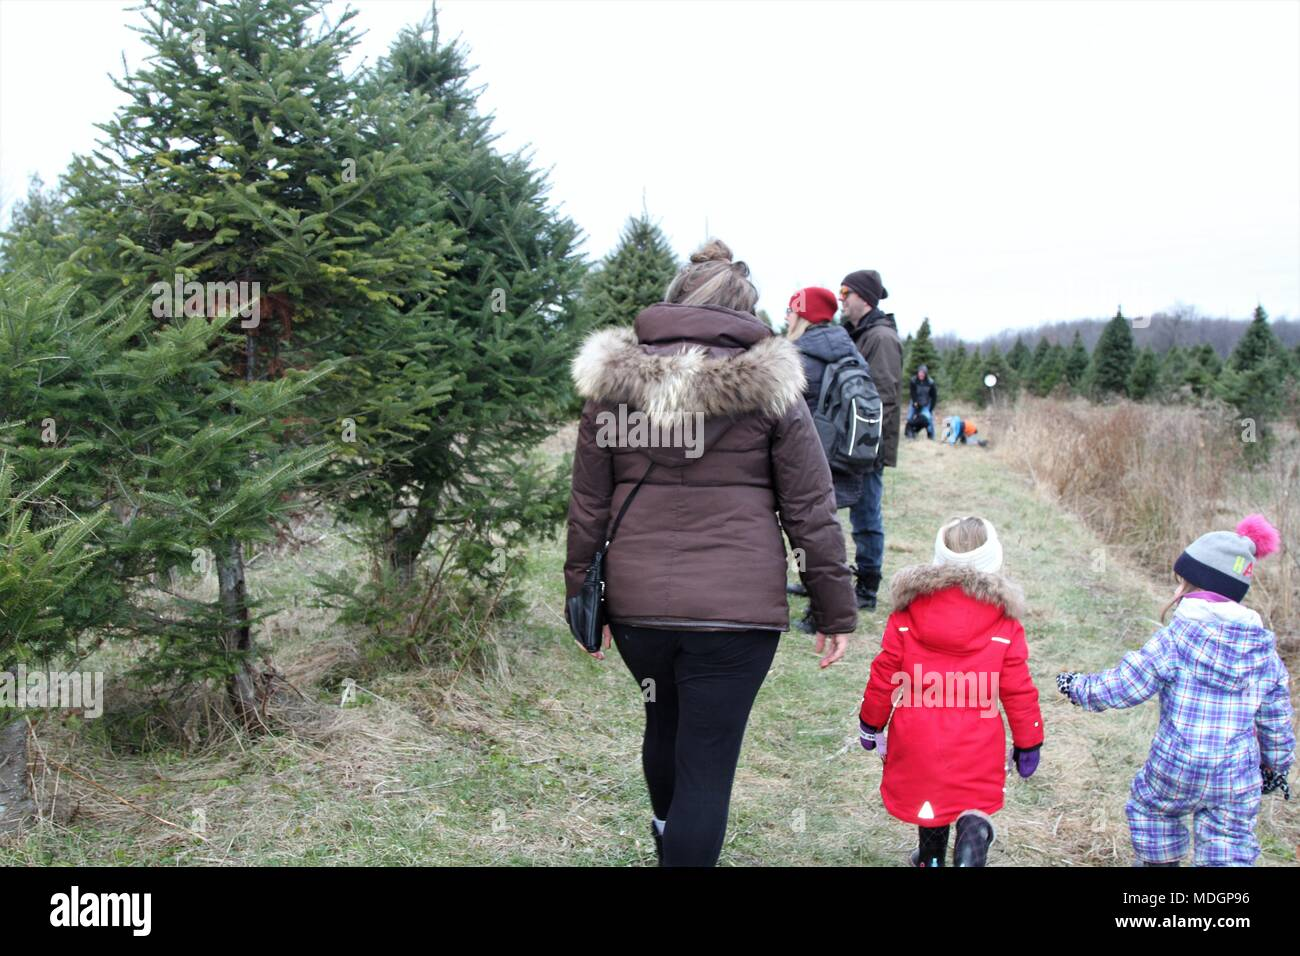 People walking on a path in search of a green holiday tree Stock Photo